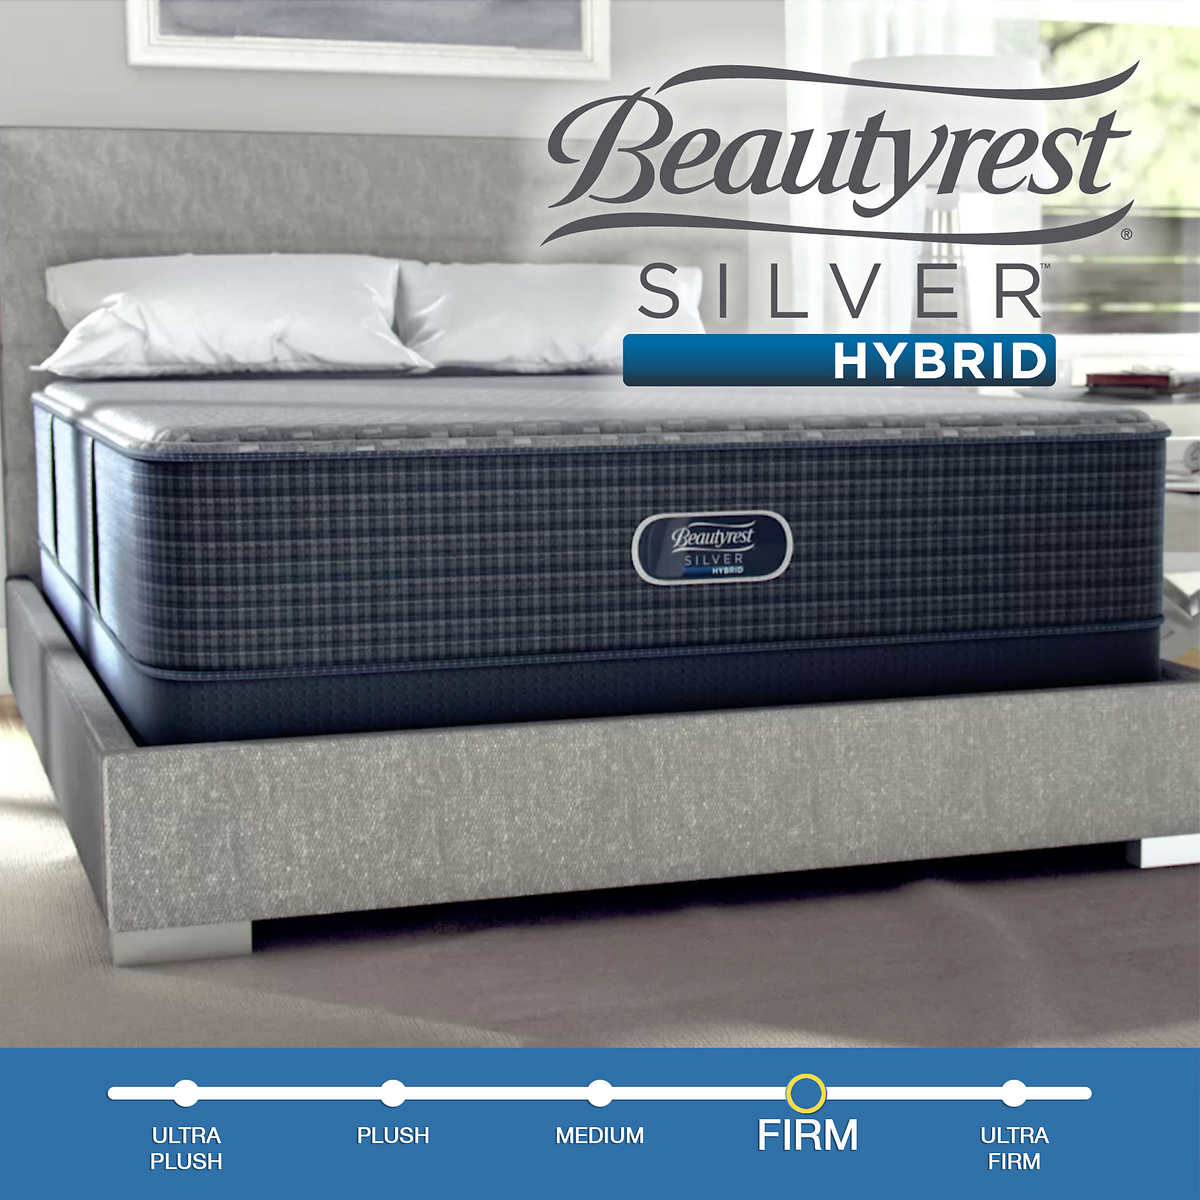 Simmons Beautyrest Romeo 13 Silver Hybrid Luxury Firm Twin Mattress